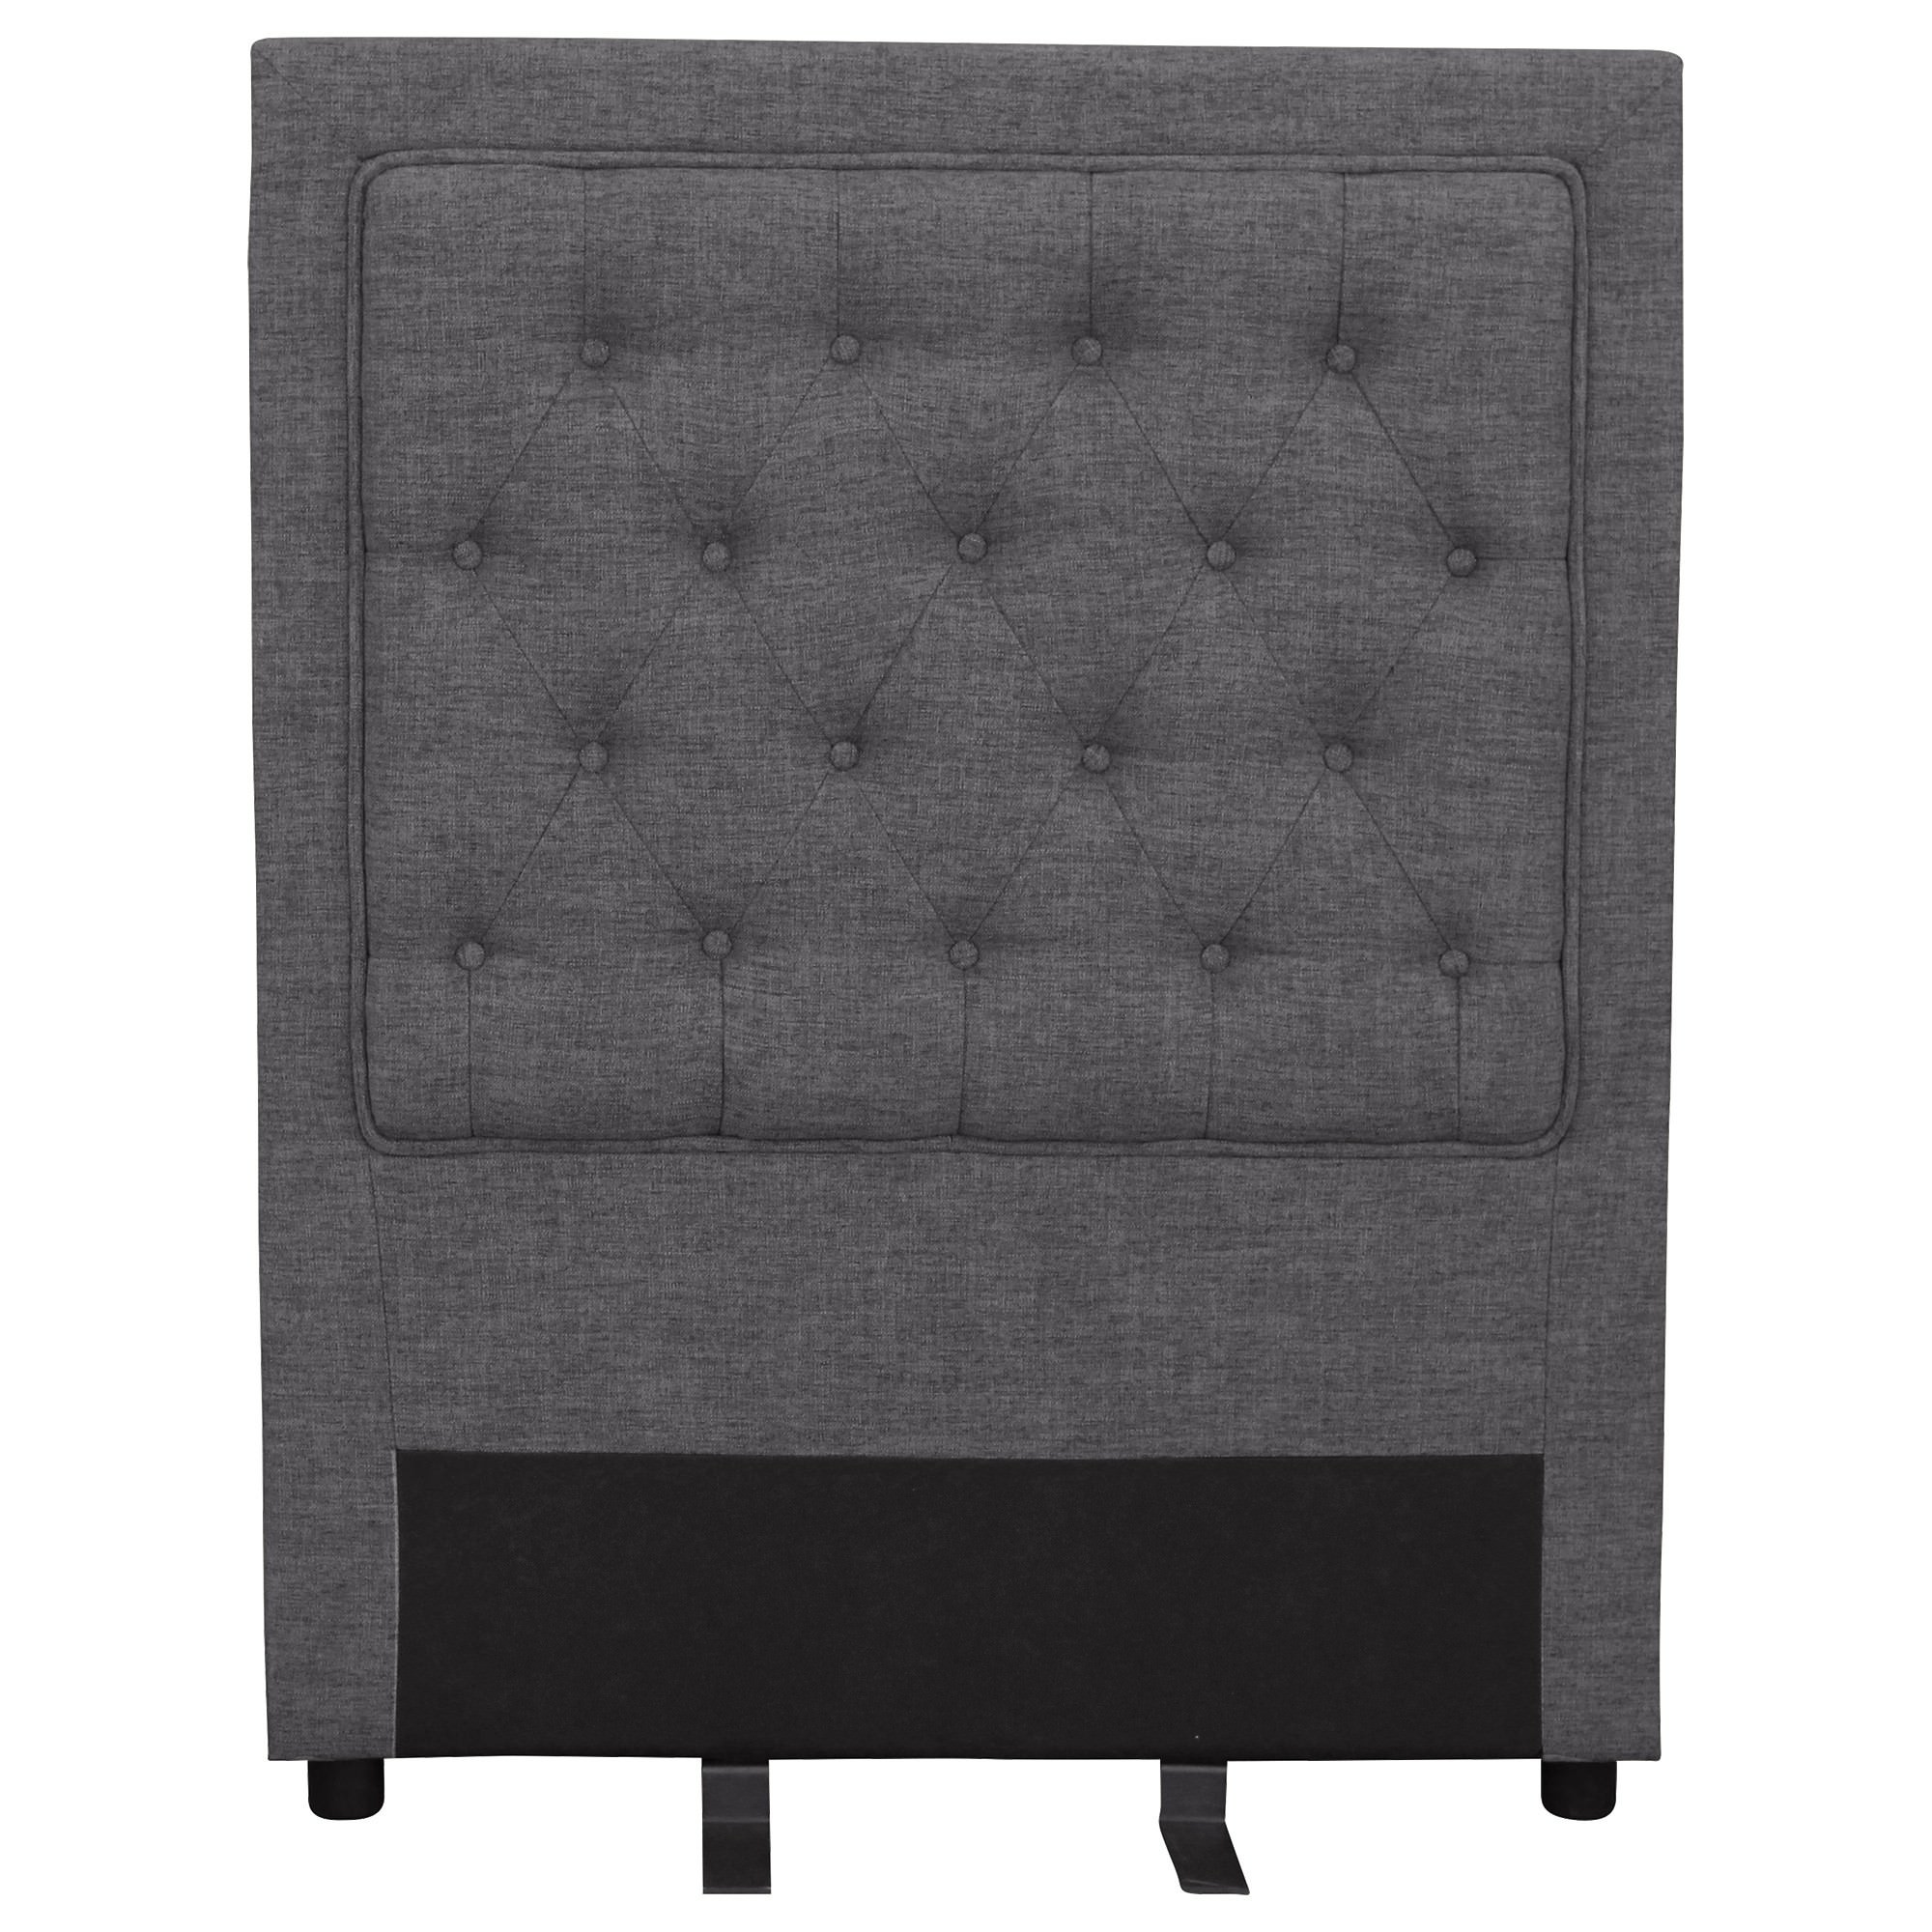 Arwen Tufted Fabric Bed Headboard, King Single, Dark Grey